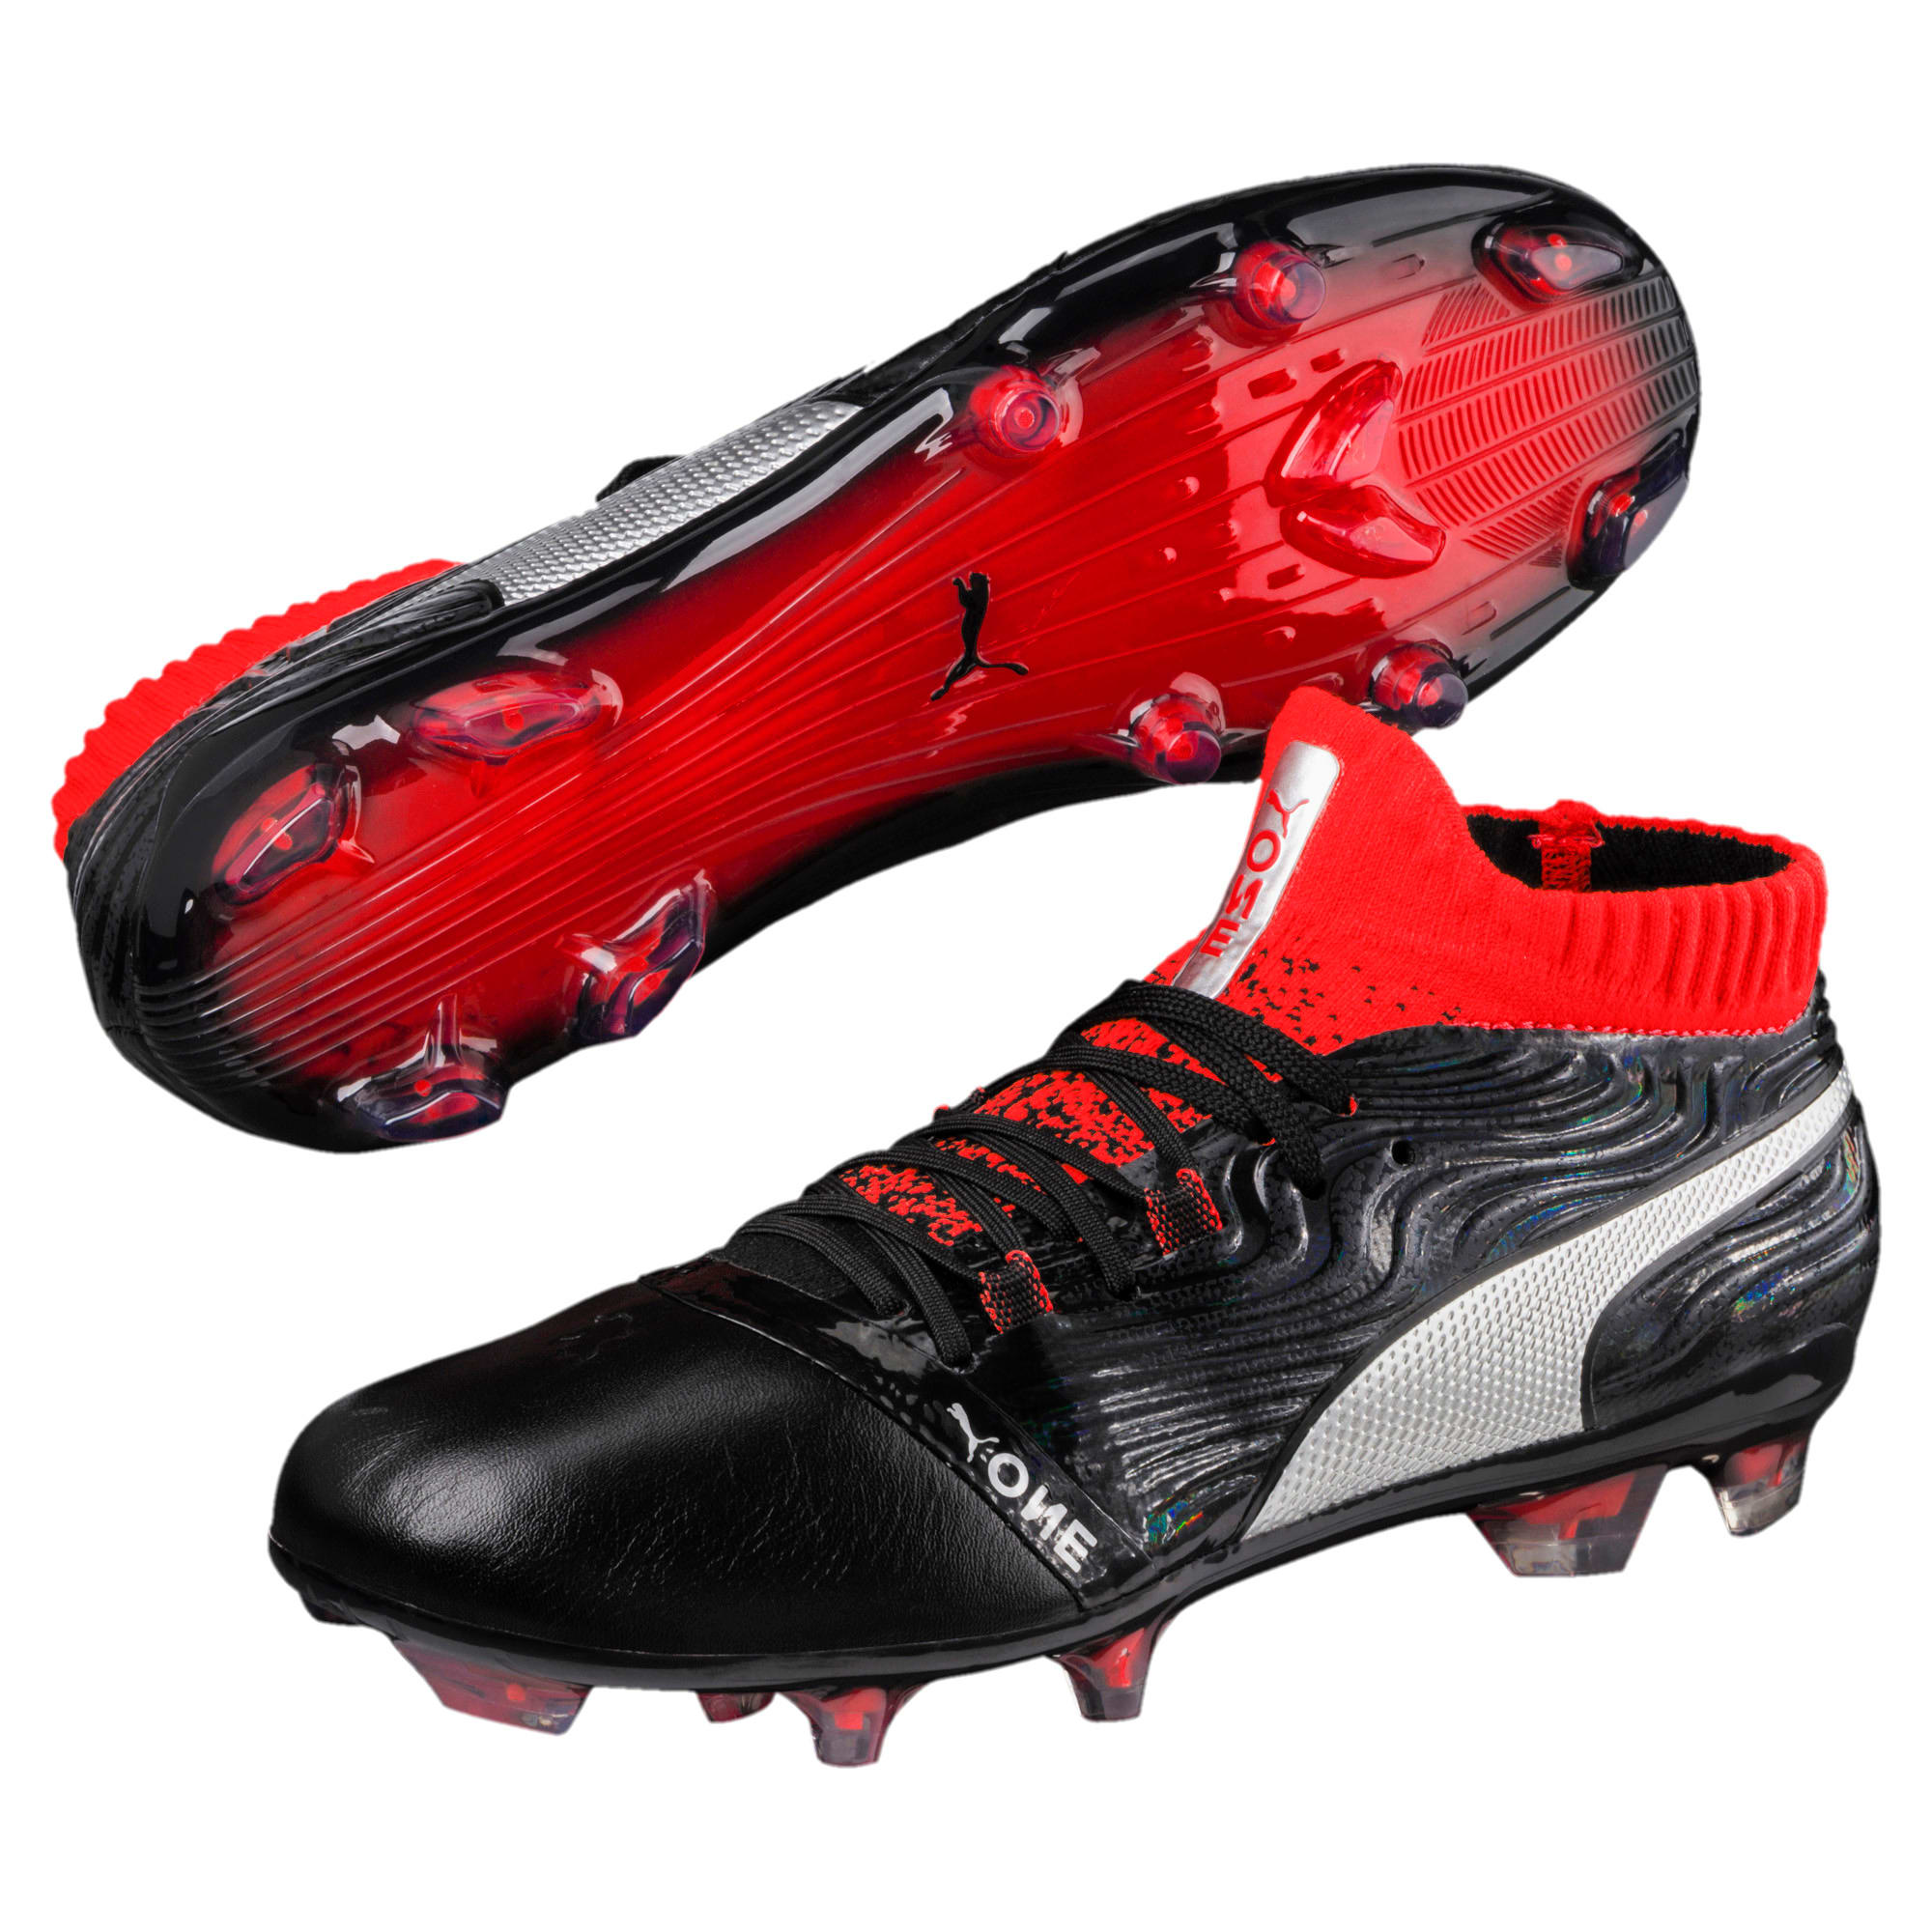 Thumbnail 2 of ONE 18.1 FG Soccer Cleats JR, Black-Silver-Red, medium